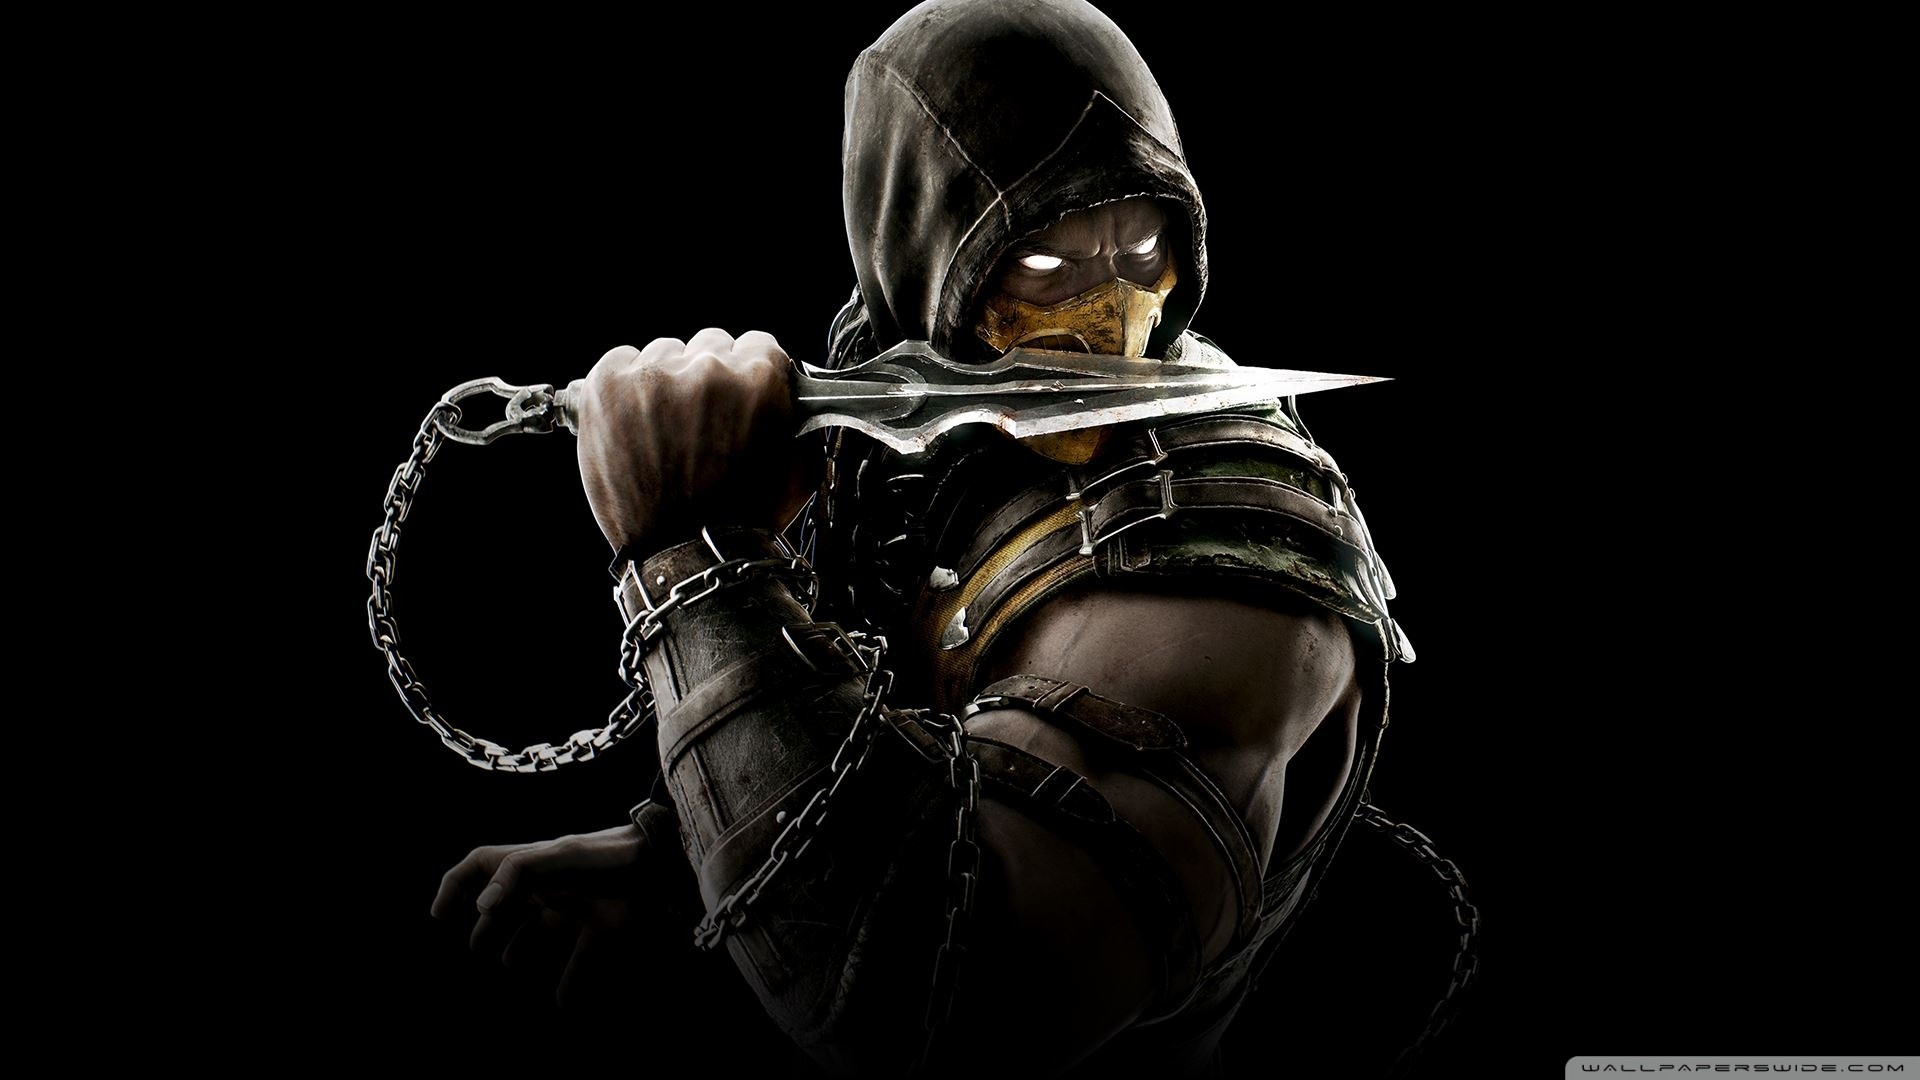 Mortal Kombat Wallpapers Hd 73 Background Pictures